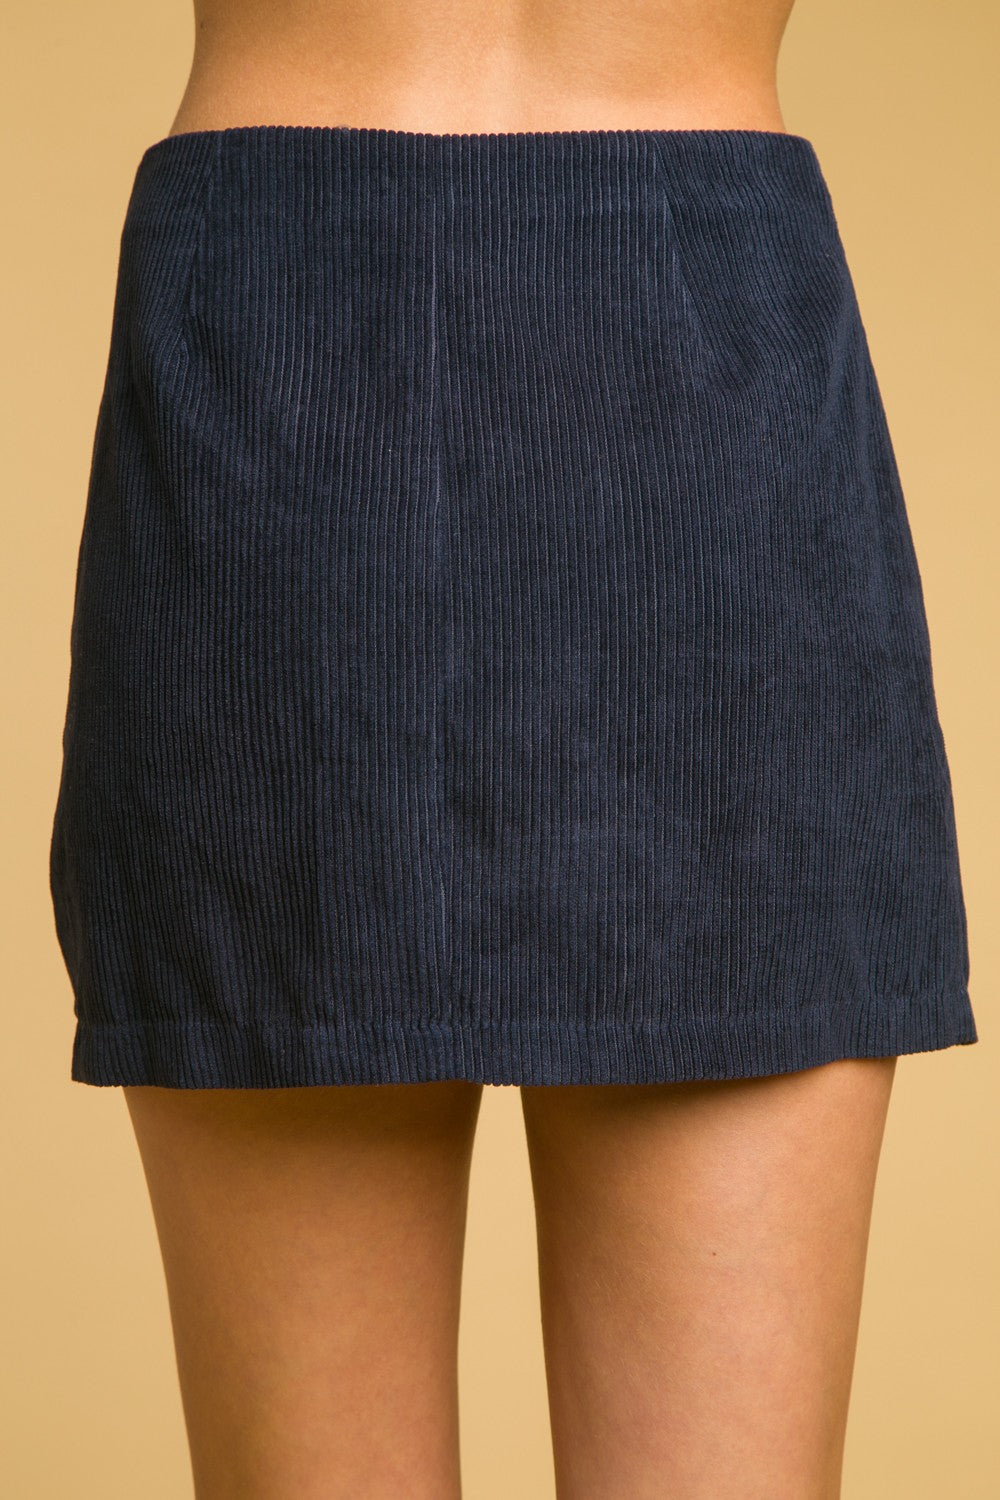 High waisted blue corduroy skirt with button detail.